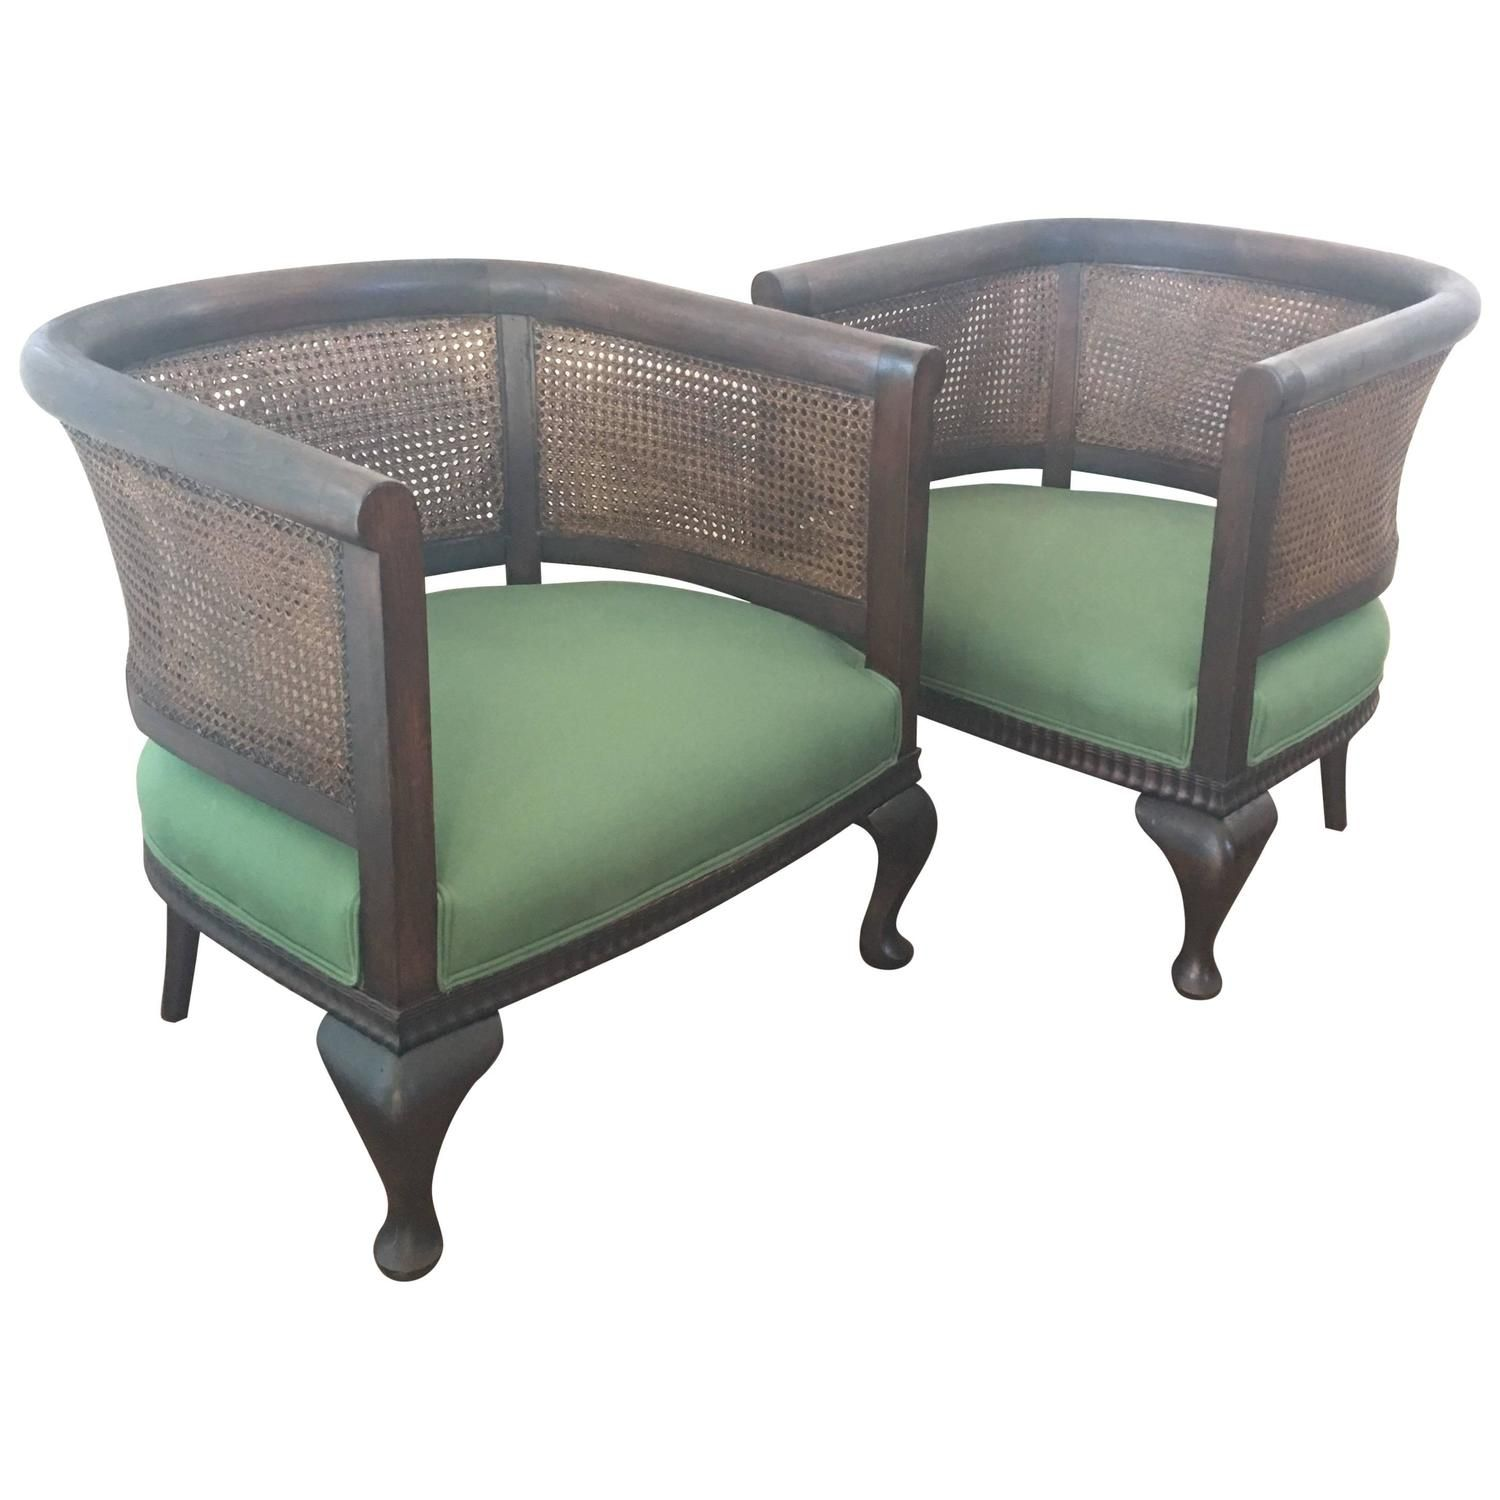 Early 20th Century Framed Bergere Caned Club Chairs